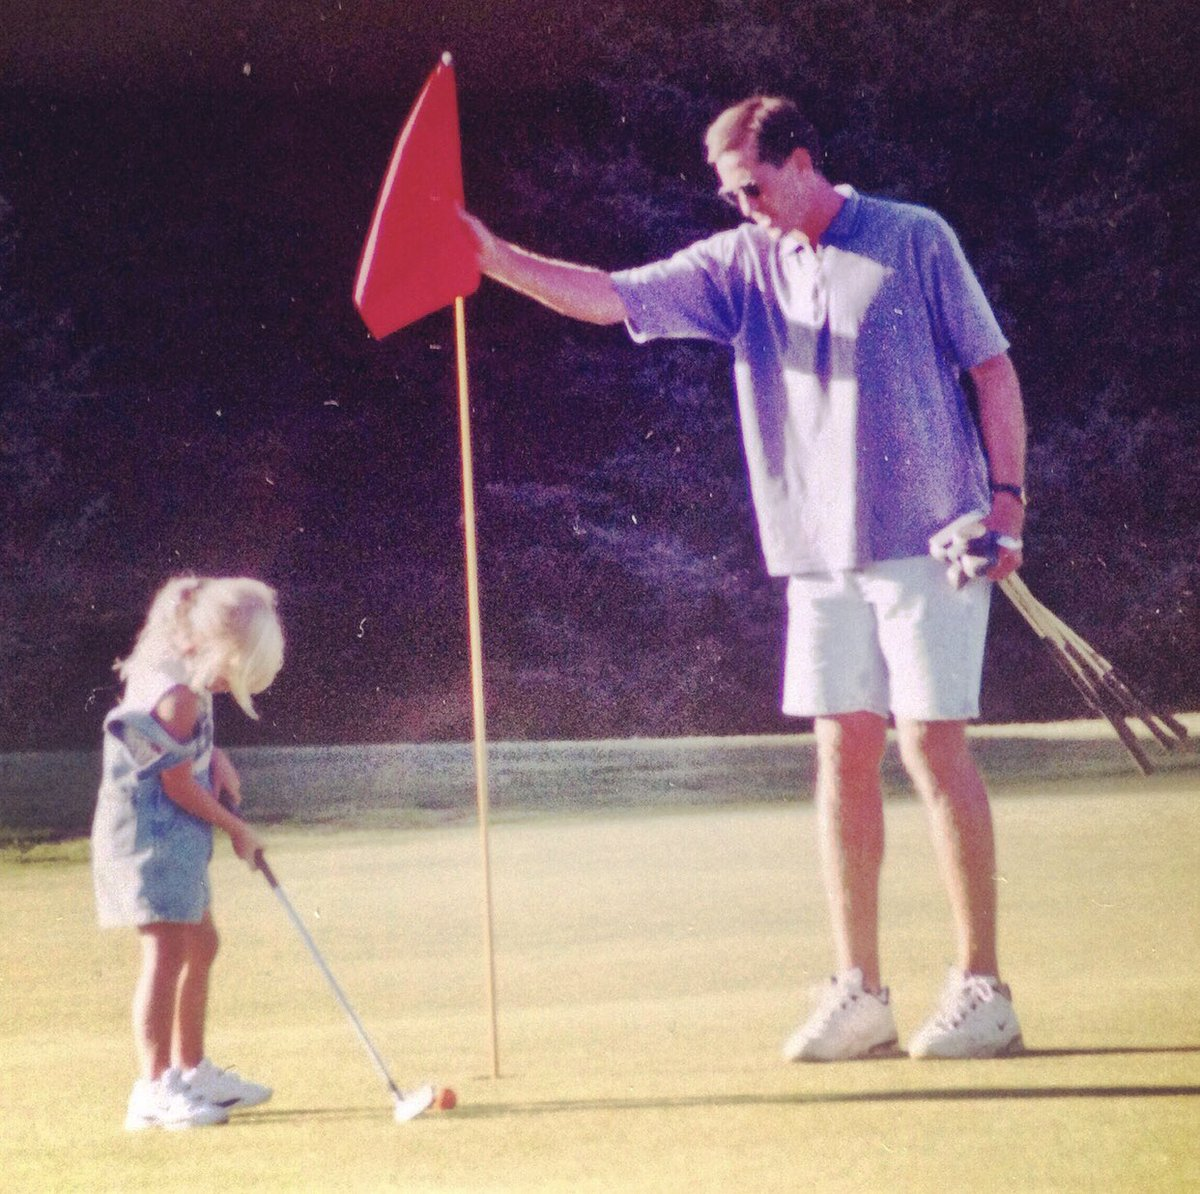 Happy Father's Day to the best caddie out there! Love you, Pops! 💕